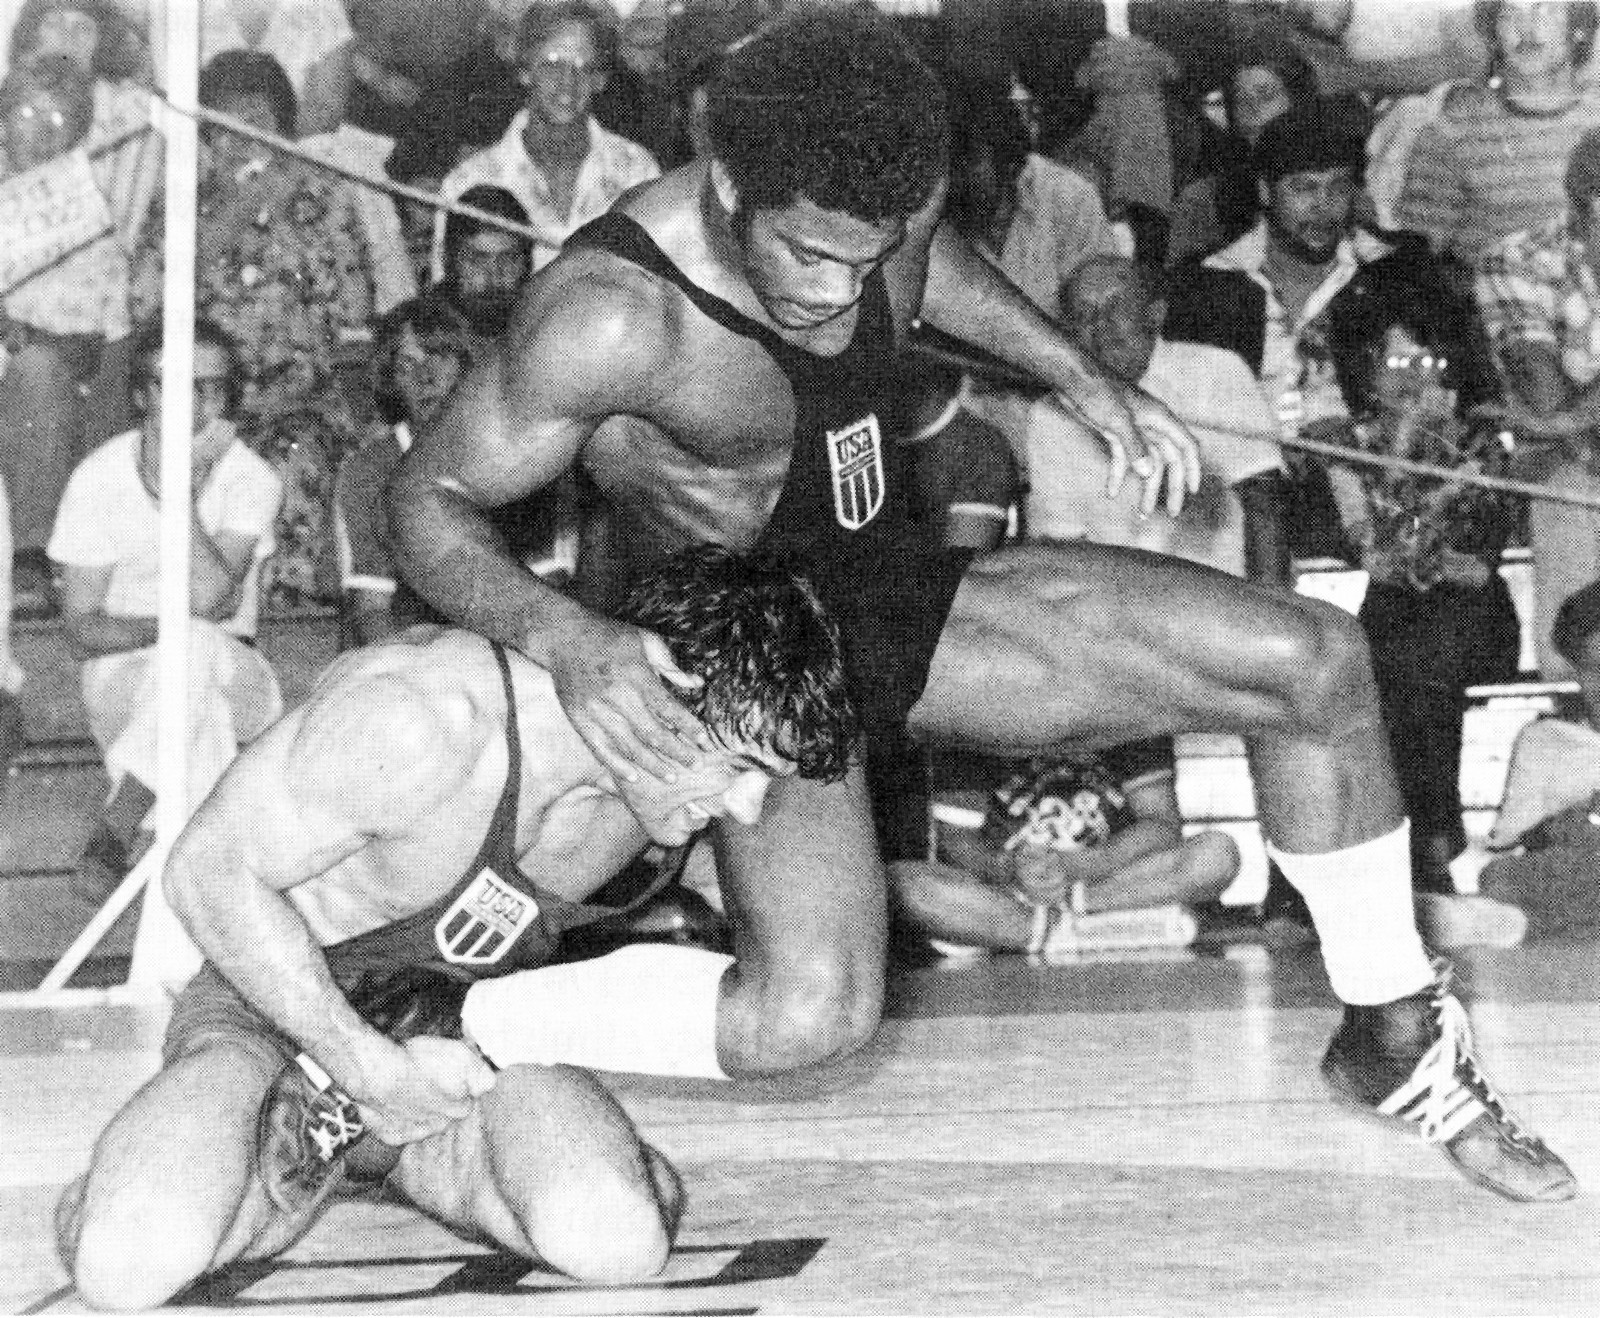 history of wrestling Ncaa tournament history: wrestling 4716d walton sets tone as lebron, lakers hit the court los angeles lakers 4h dave mcmenamin scherzer joins elite company with 300th strikeout.